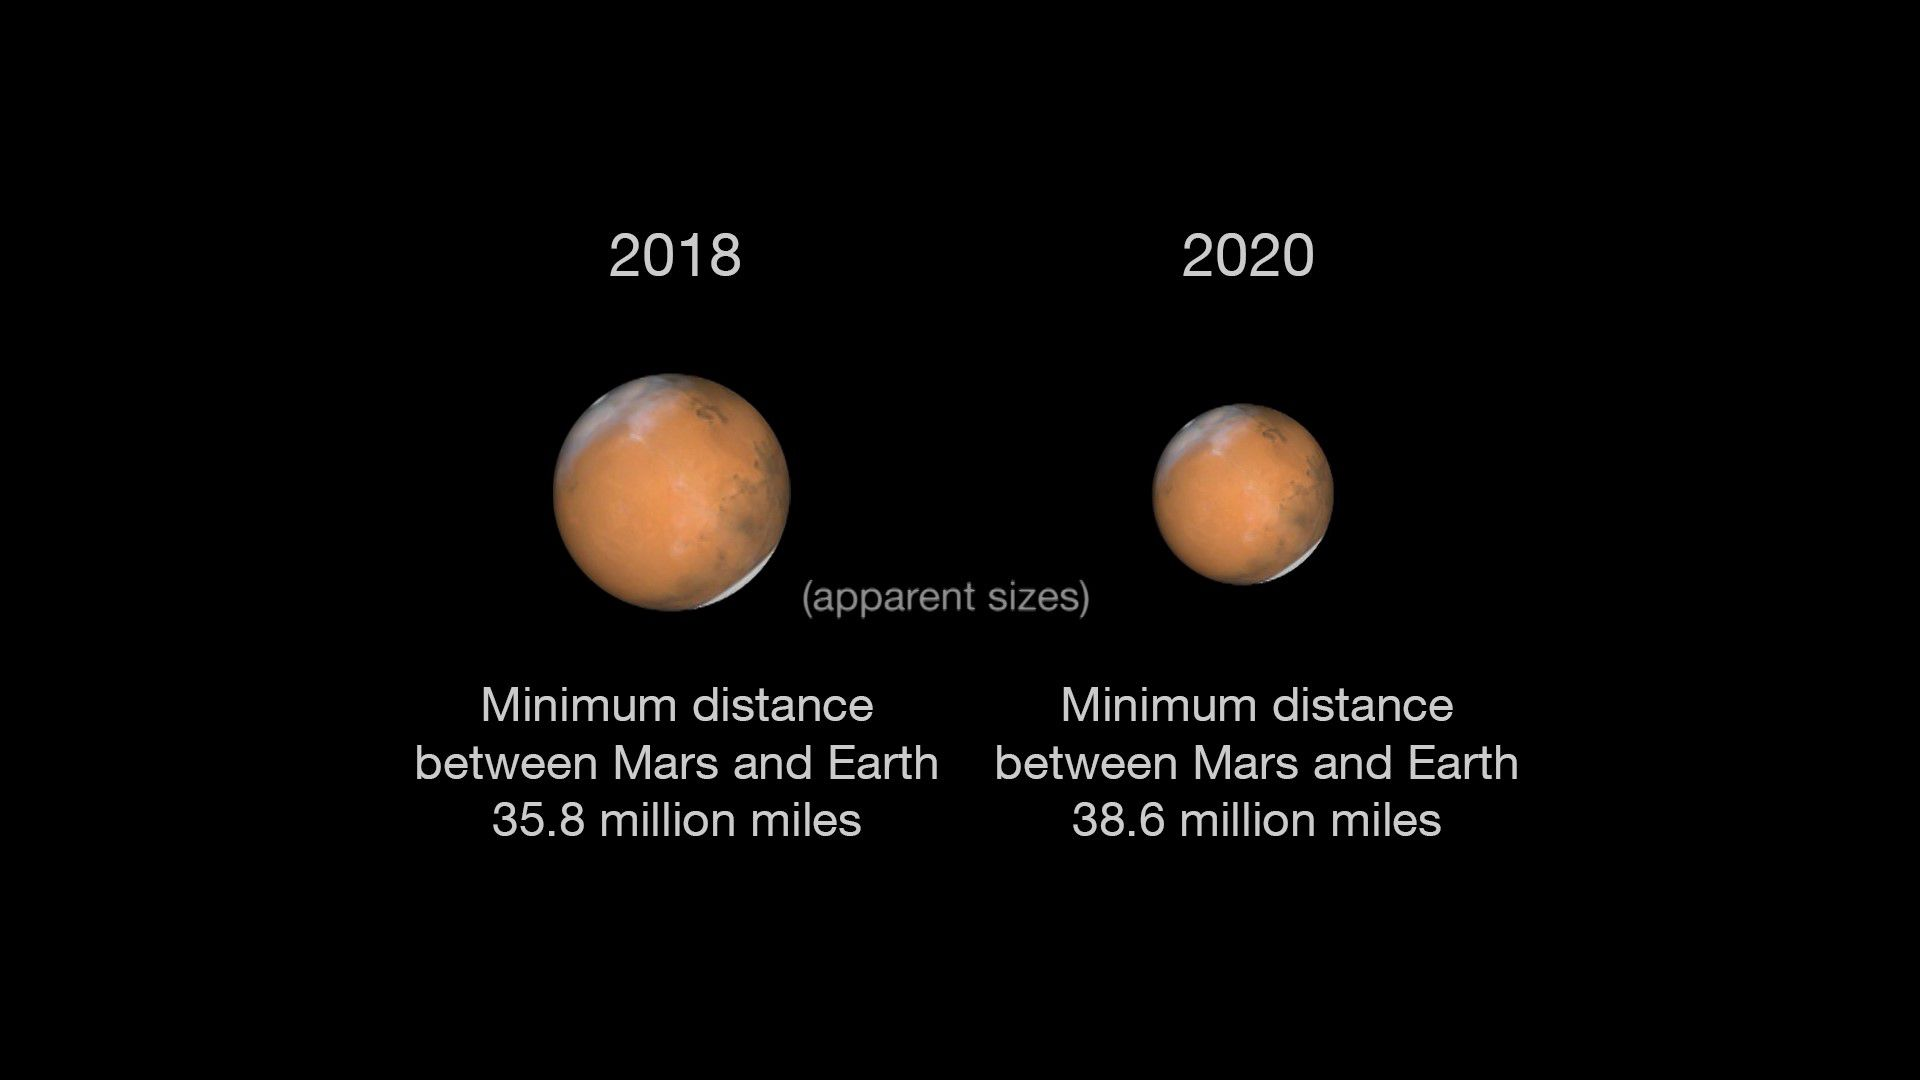 While 2020 will bring Mars almost as close as 2018, the size difference is dramatic.